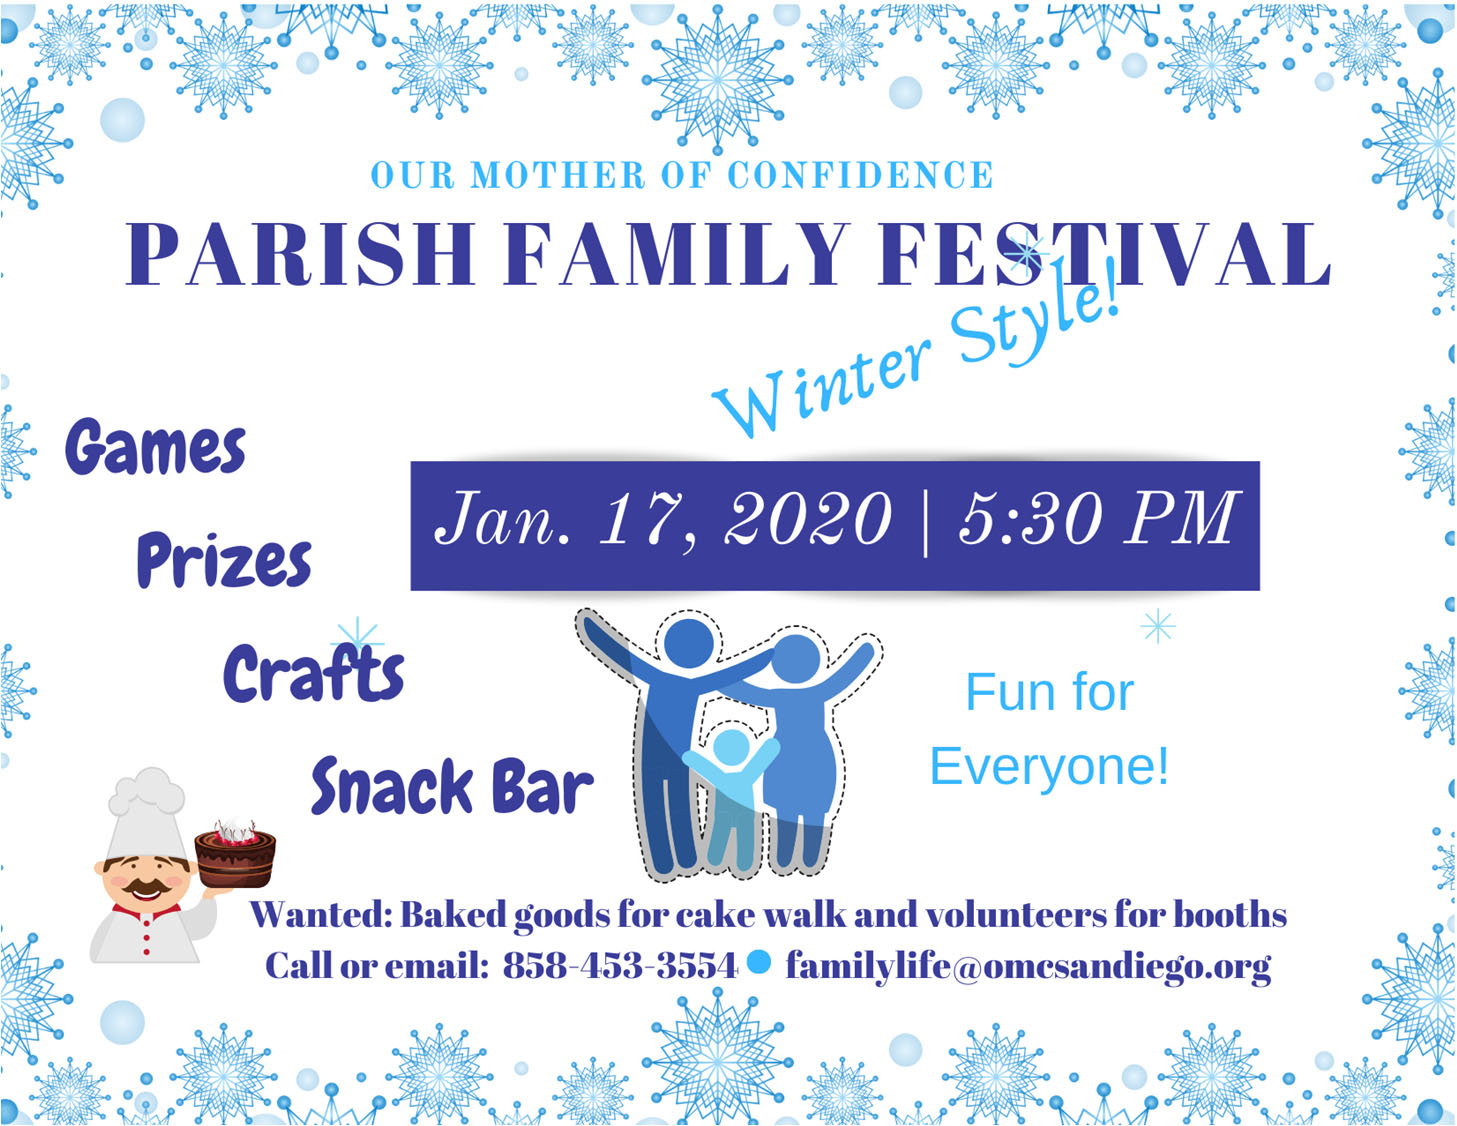 Parish Family Festival